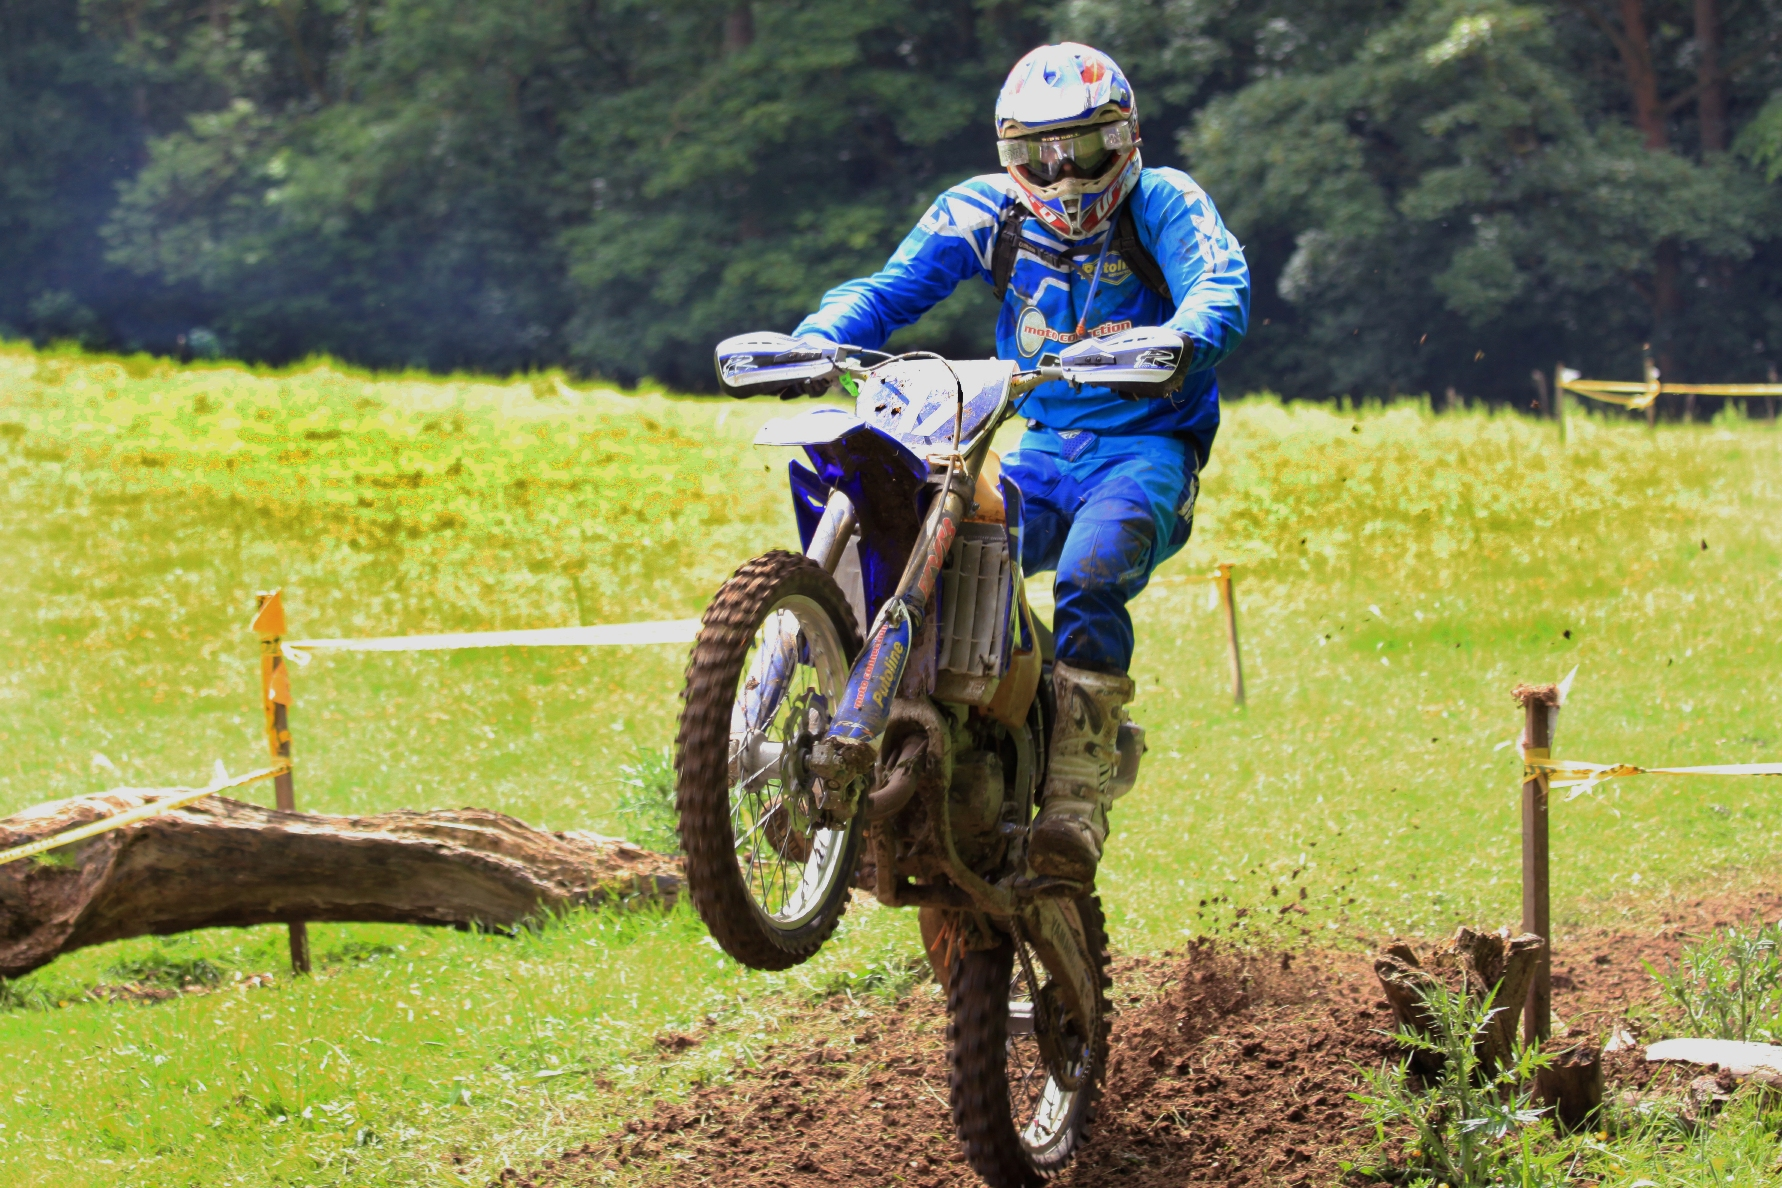 IN ACTION: Robbie Wallace on the Yamaha YZ125 during round five of the Perkins Slade Ride Off Road Enduro Championship at Hatcliffe in the Lincolnshire Wold